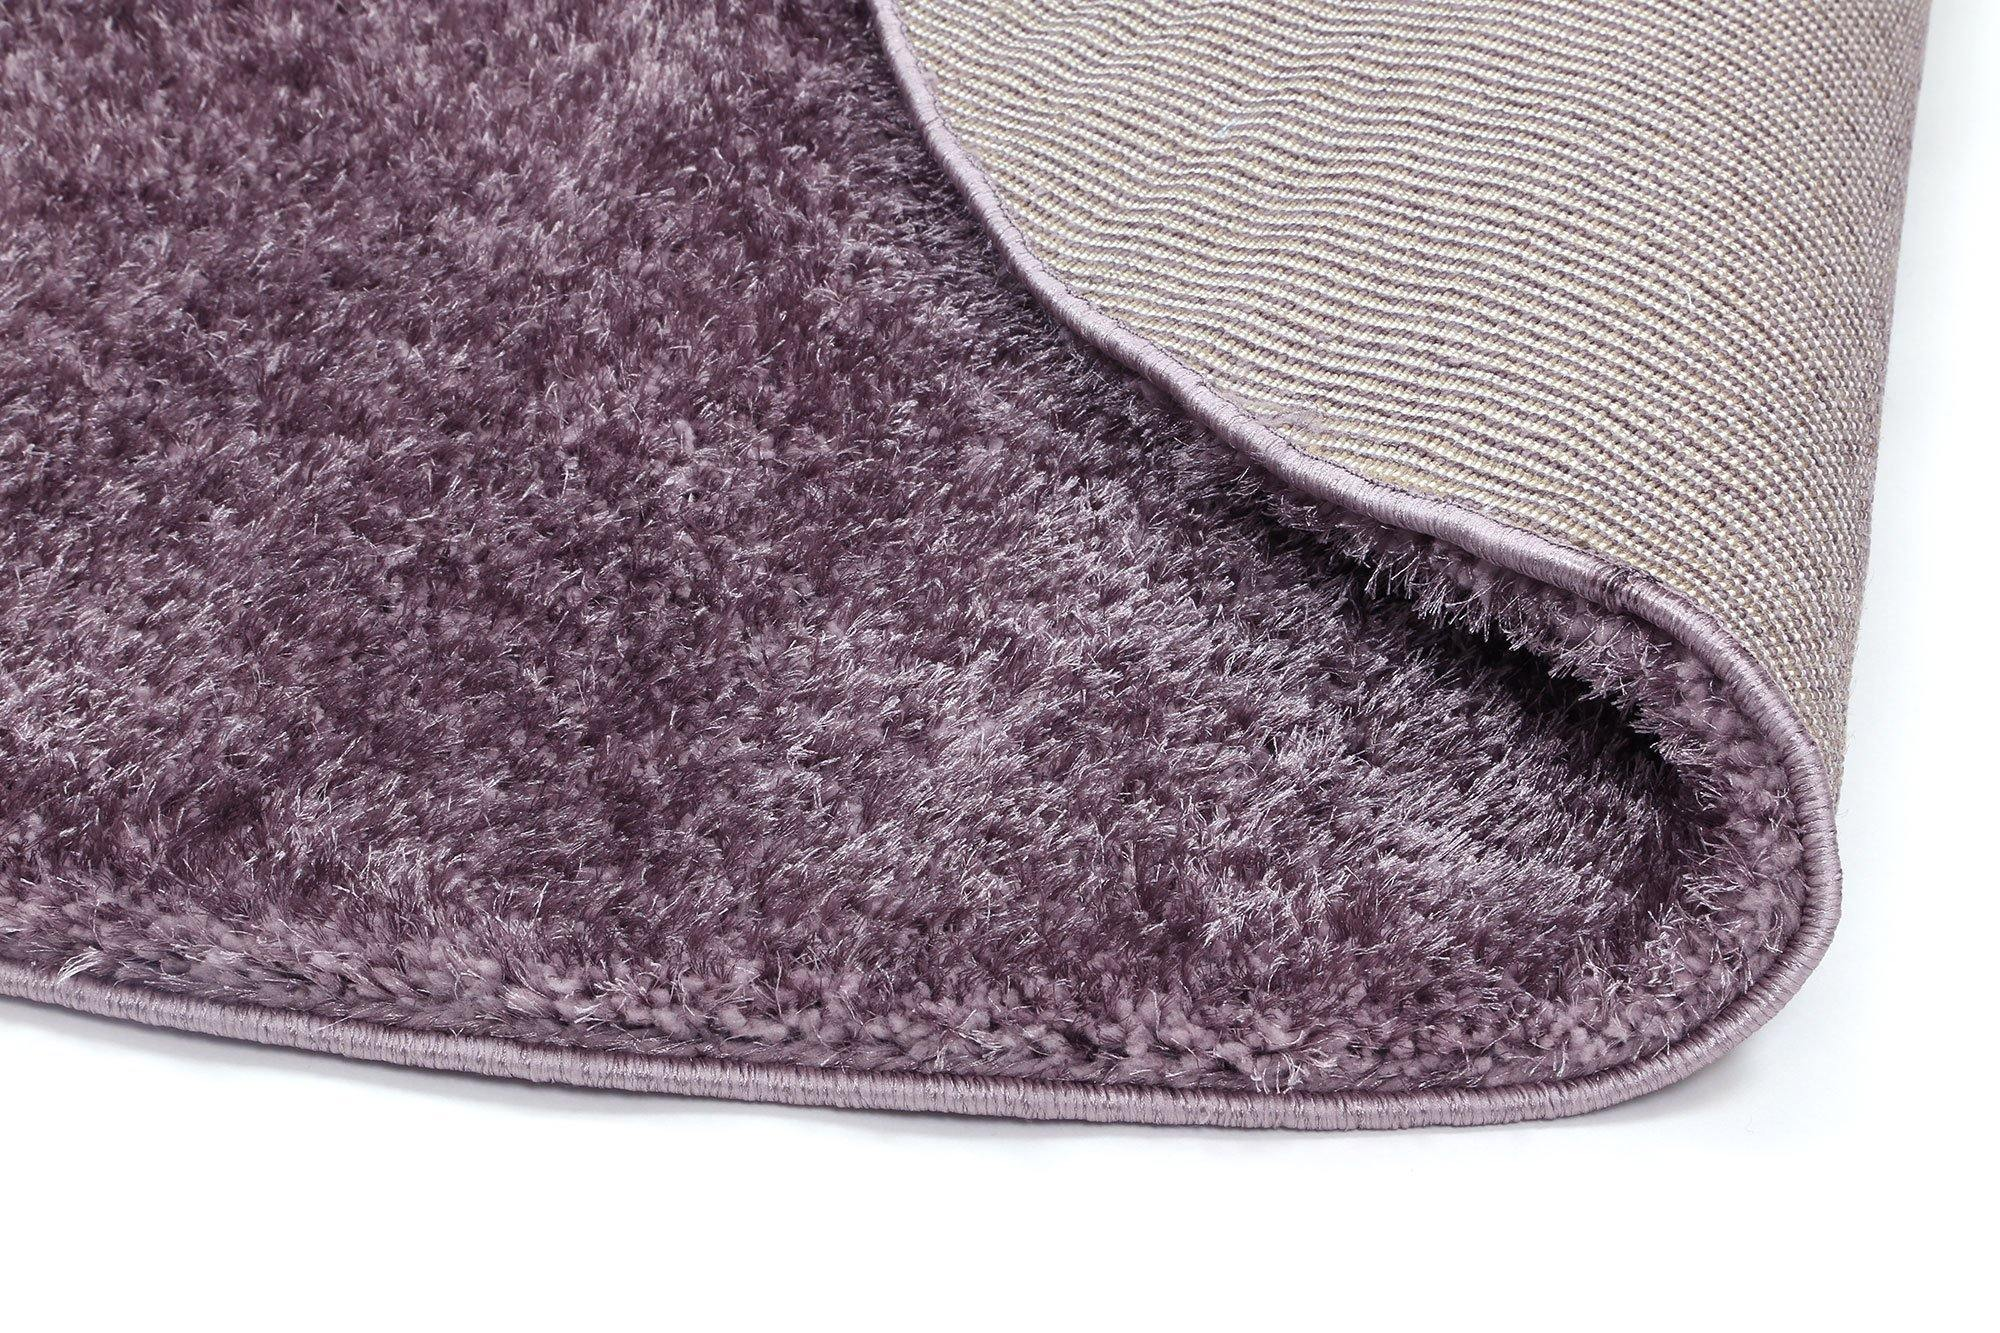 Oasis Soft Shag Lilac Rug - The Rugs